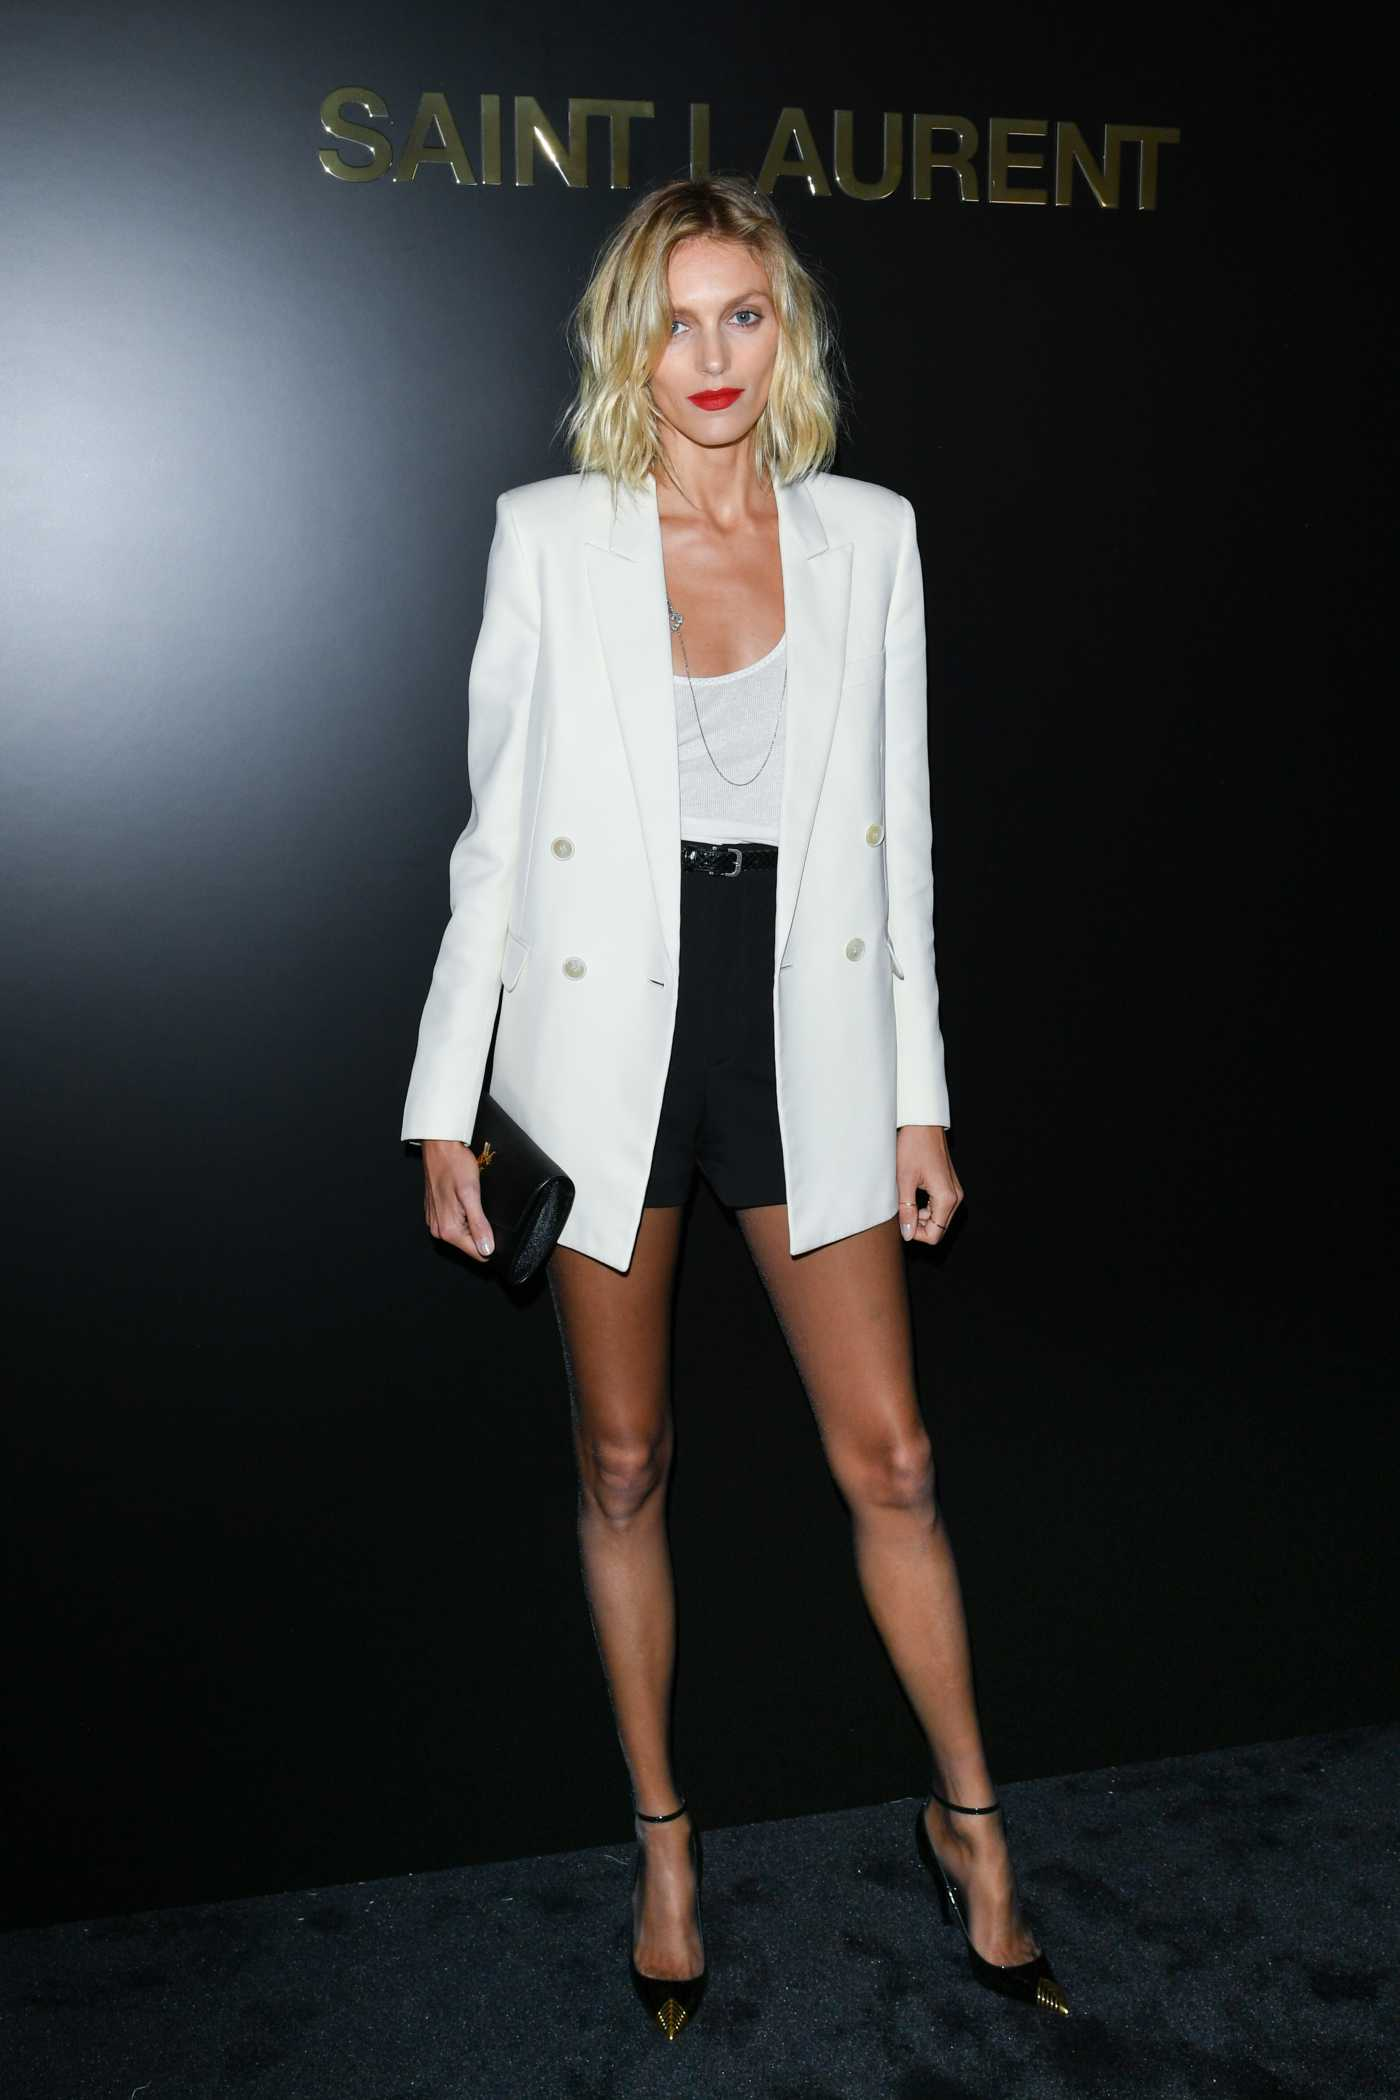 Anja Rubik Attends 2020 Saint Laurent Fashion Show in Paris 02/25/2020